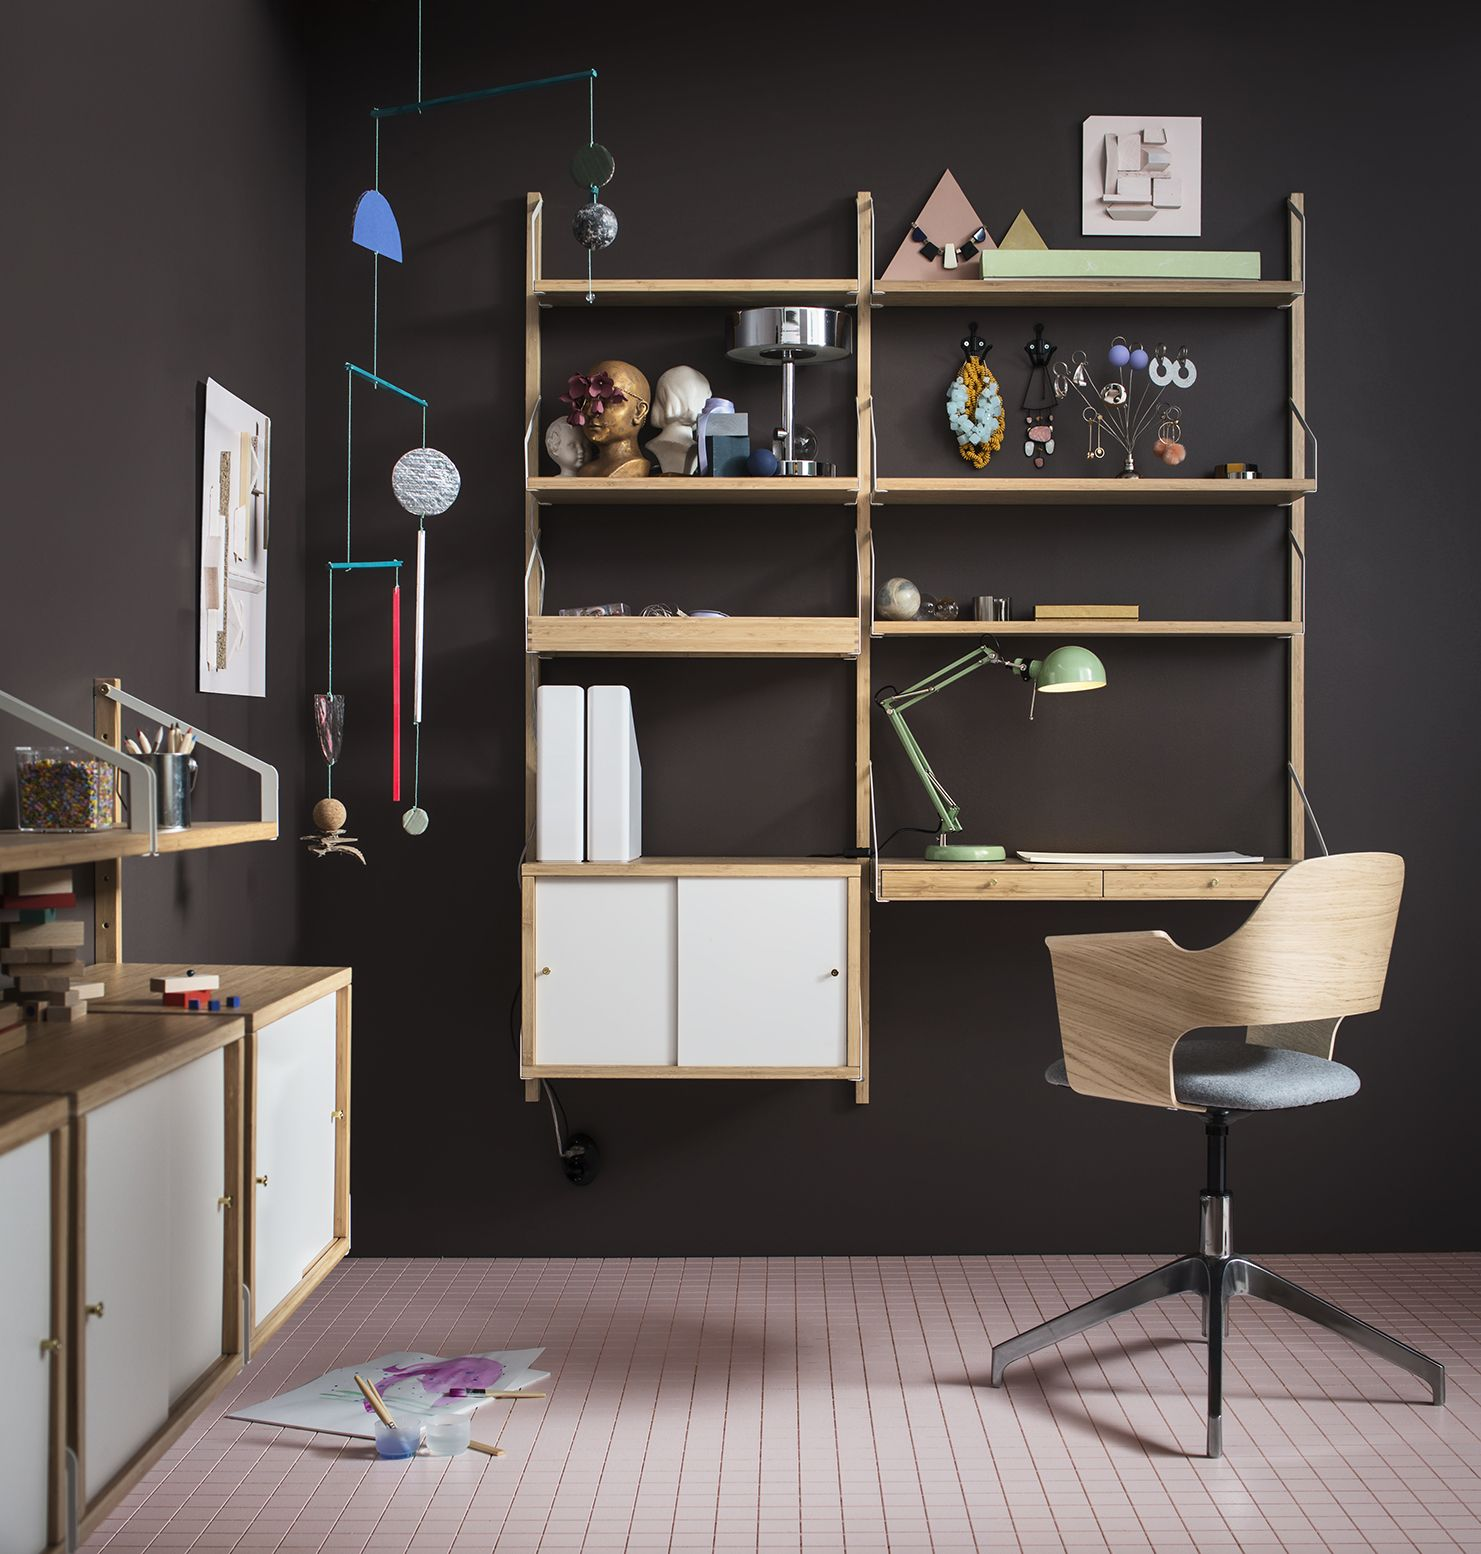 A Japanese Inspired Apartment With Plenty Storage Systems: IKEA SVALNÄS Serie